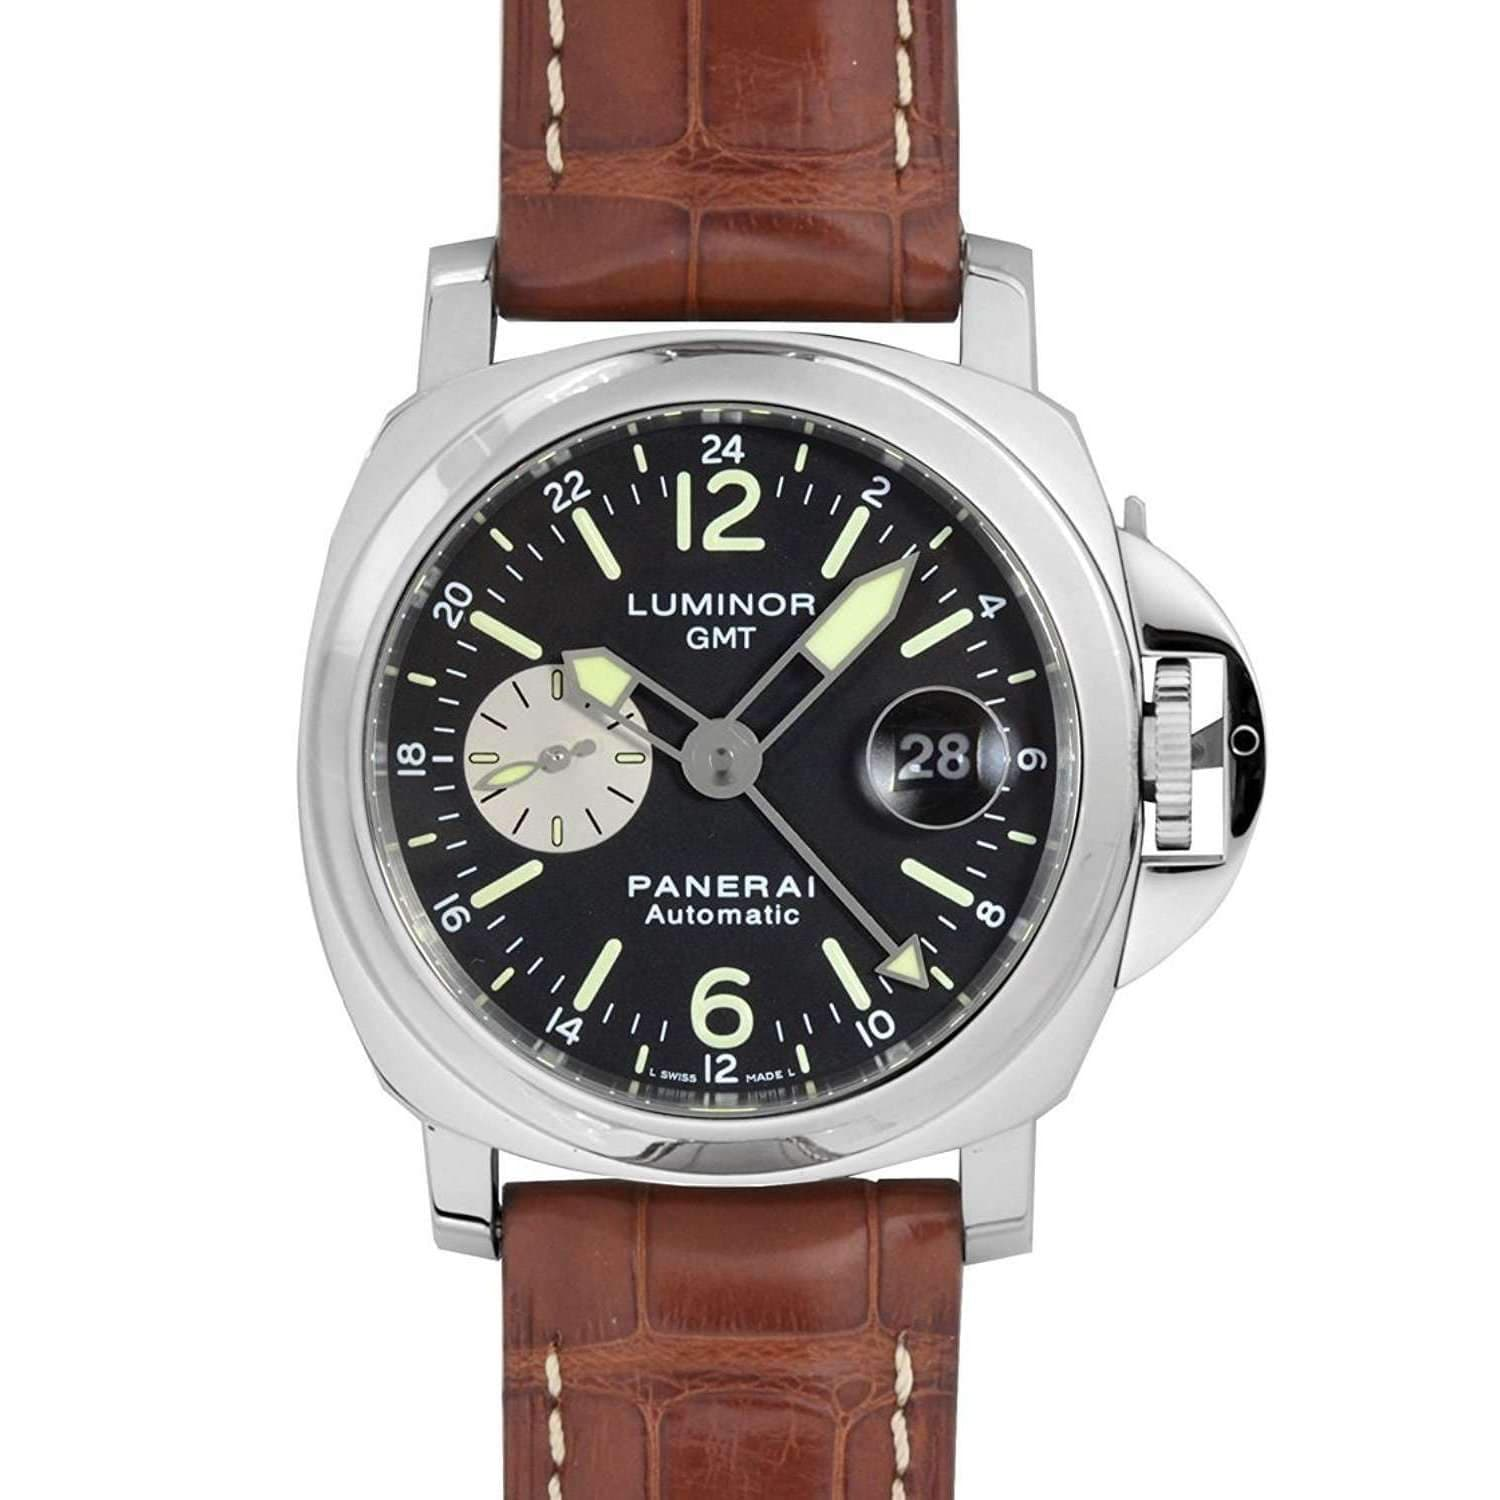 PANERAI LUMINOR GMT AUTOMATIC ACCIAIO - 44MM MEN WATCH PAM00088 - ROOK JAPAN